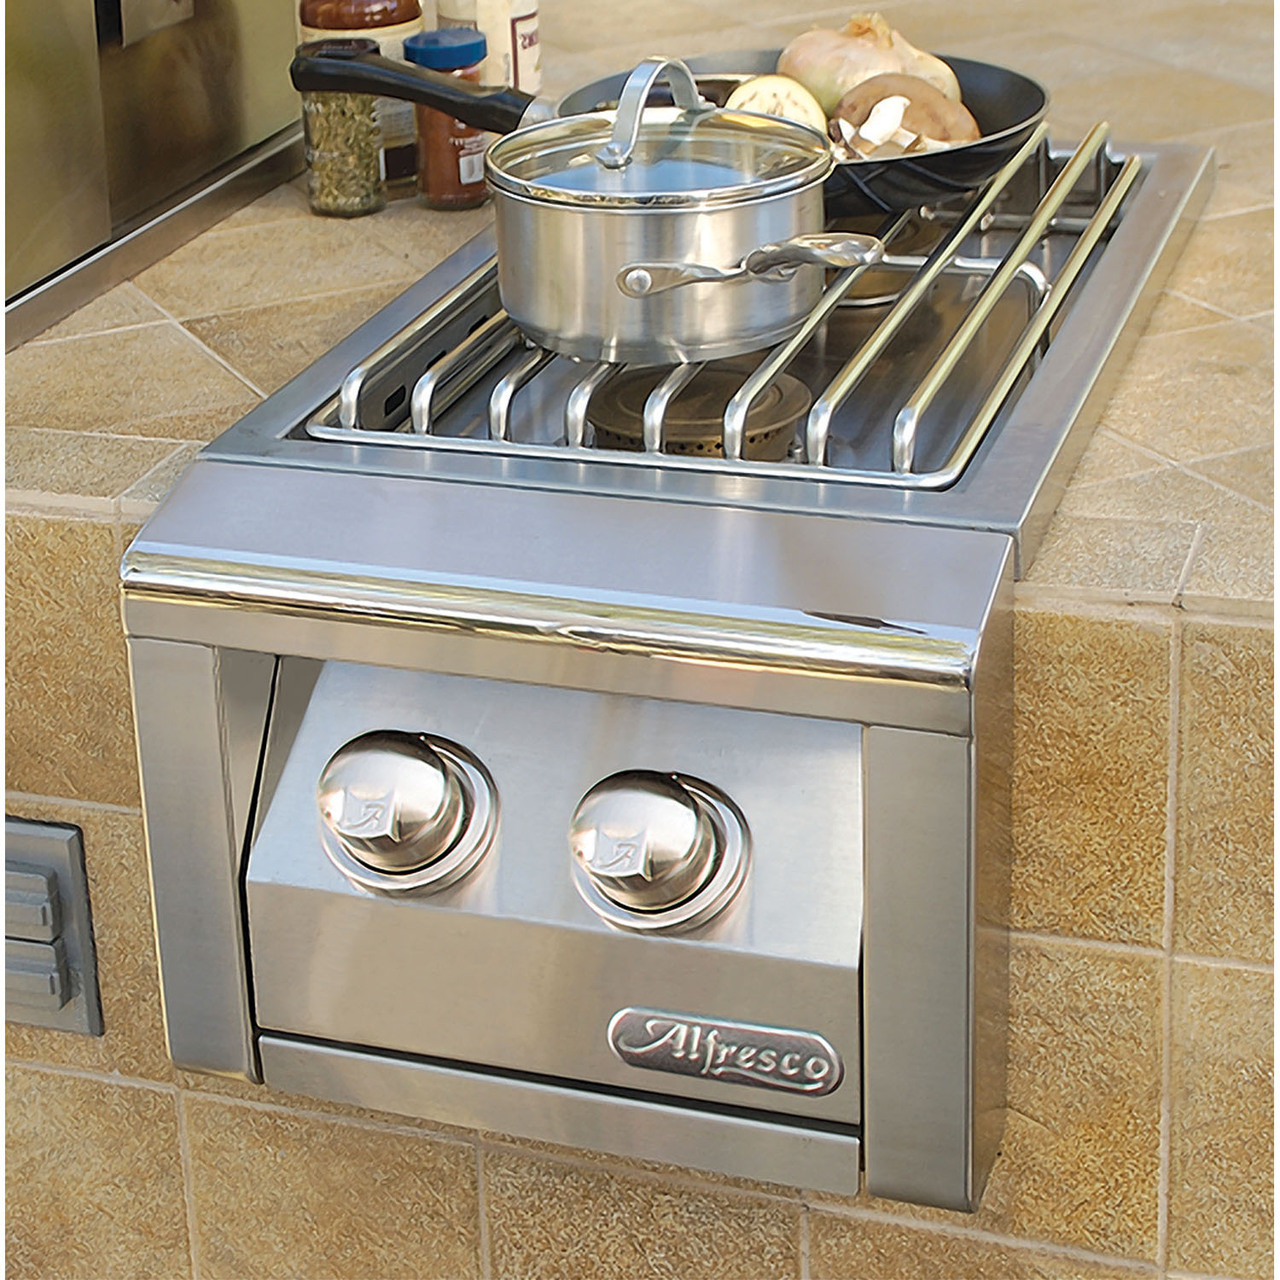 Alfresco AXESB-2 Built-in Dual Side Burner